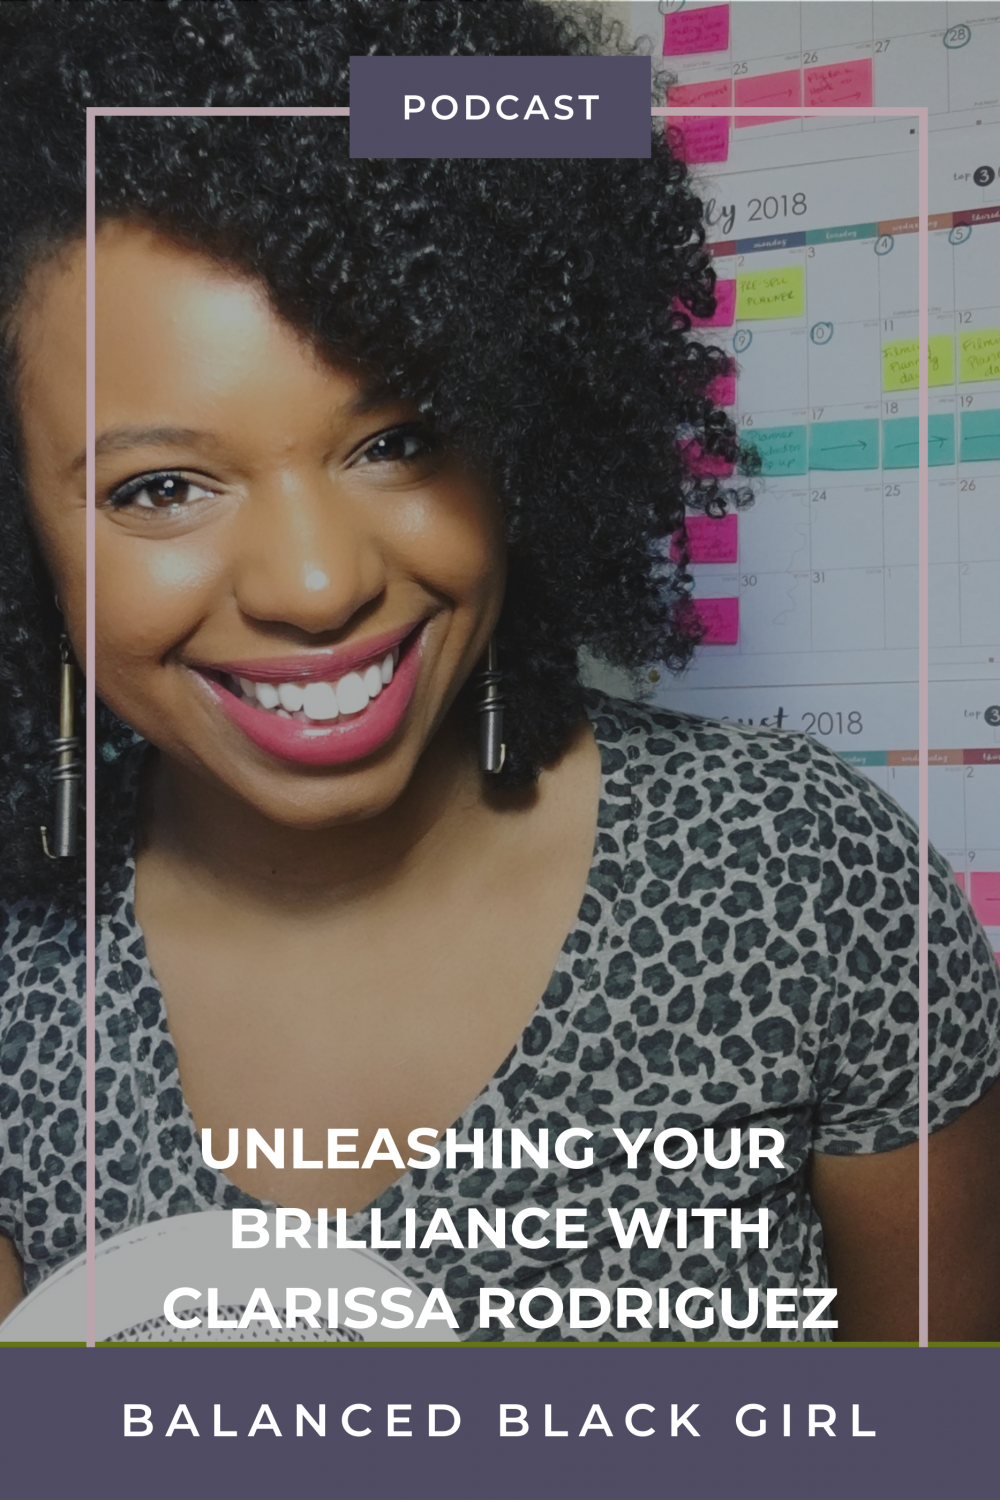 Episode 29: Unleashing Your Brilliance with Clarissa Rodriguez of She Rocks at College